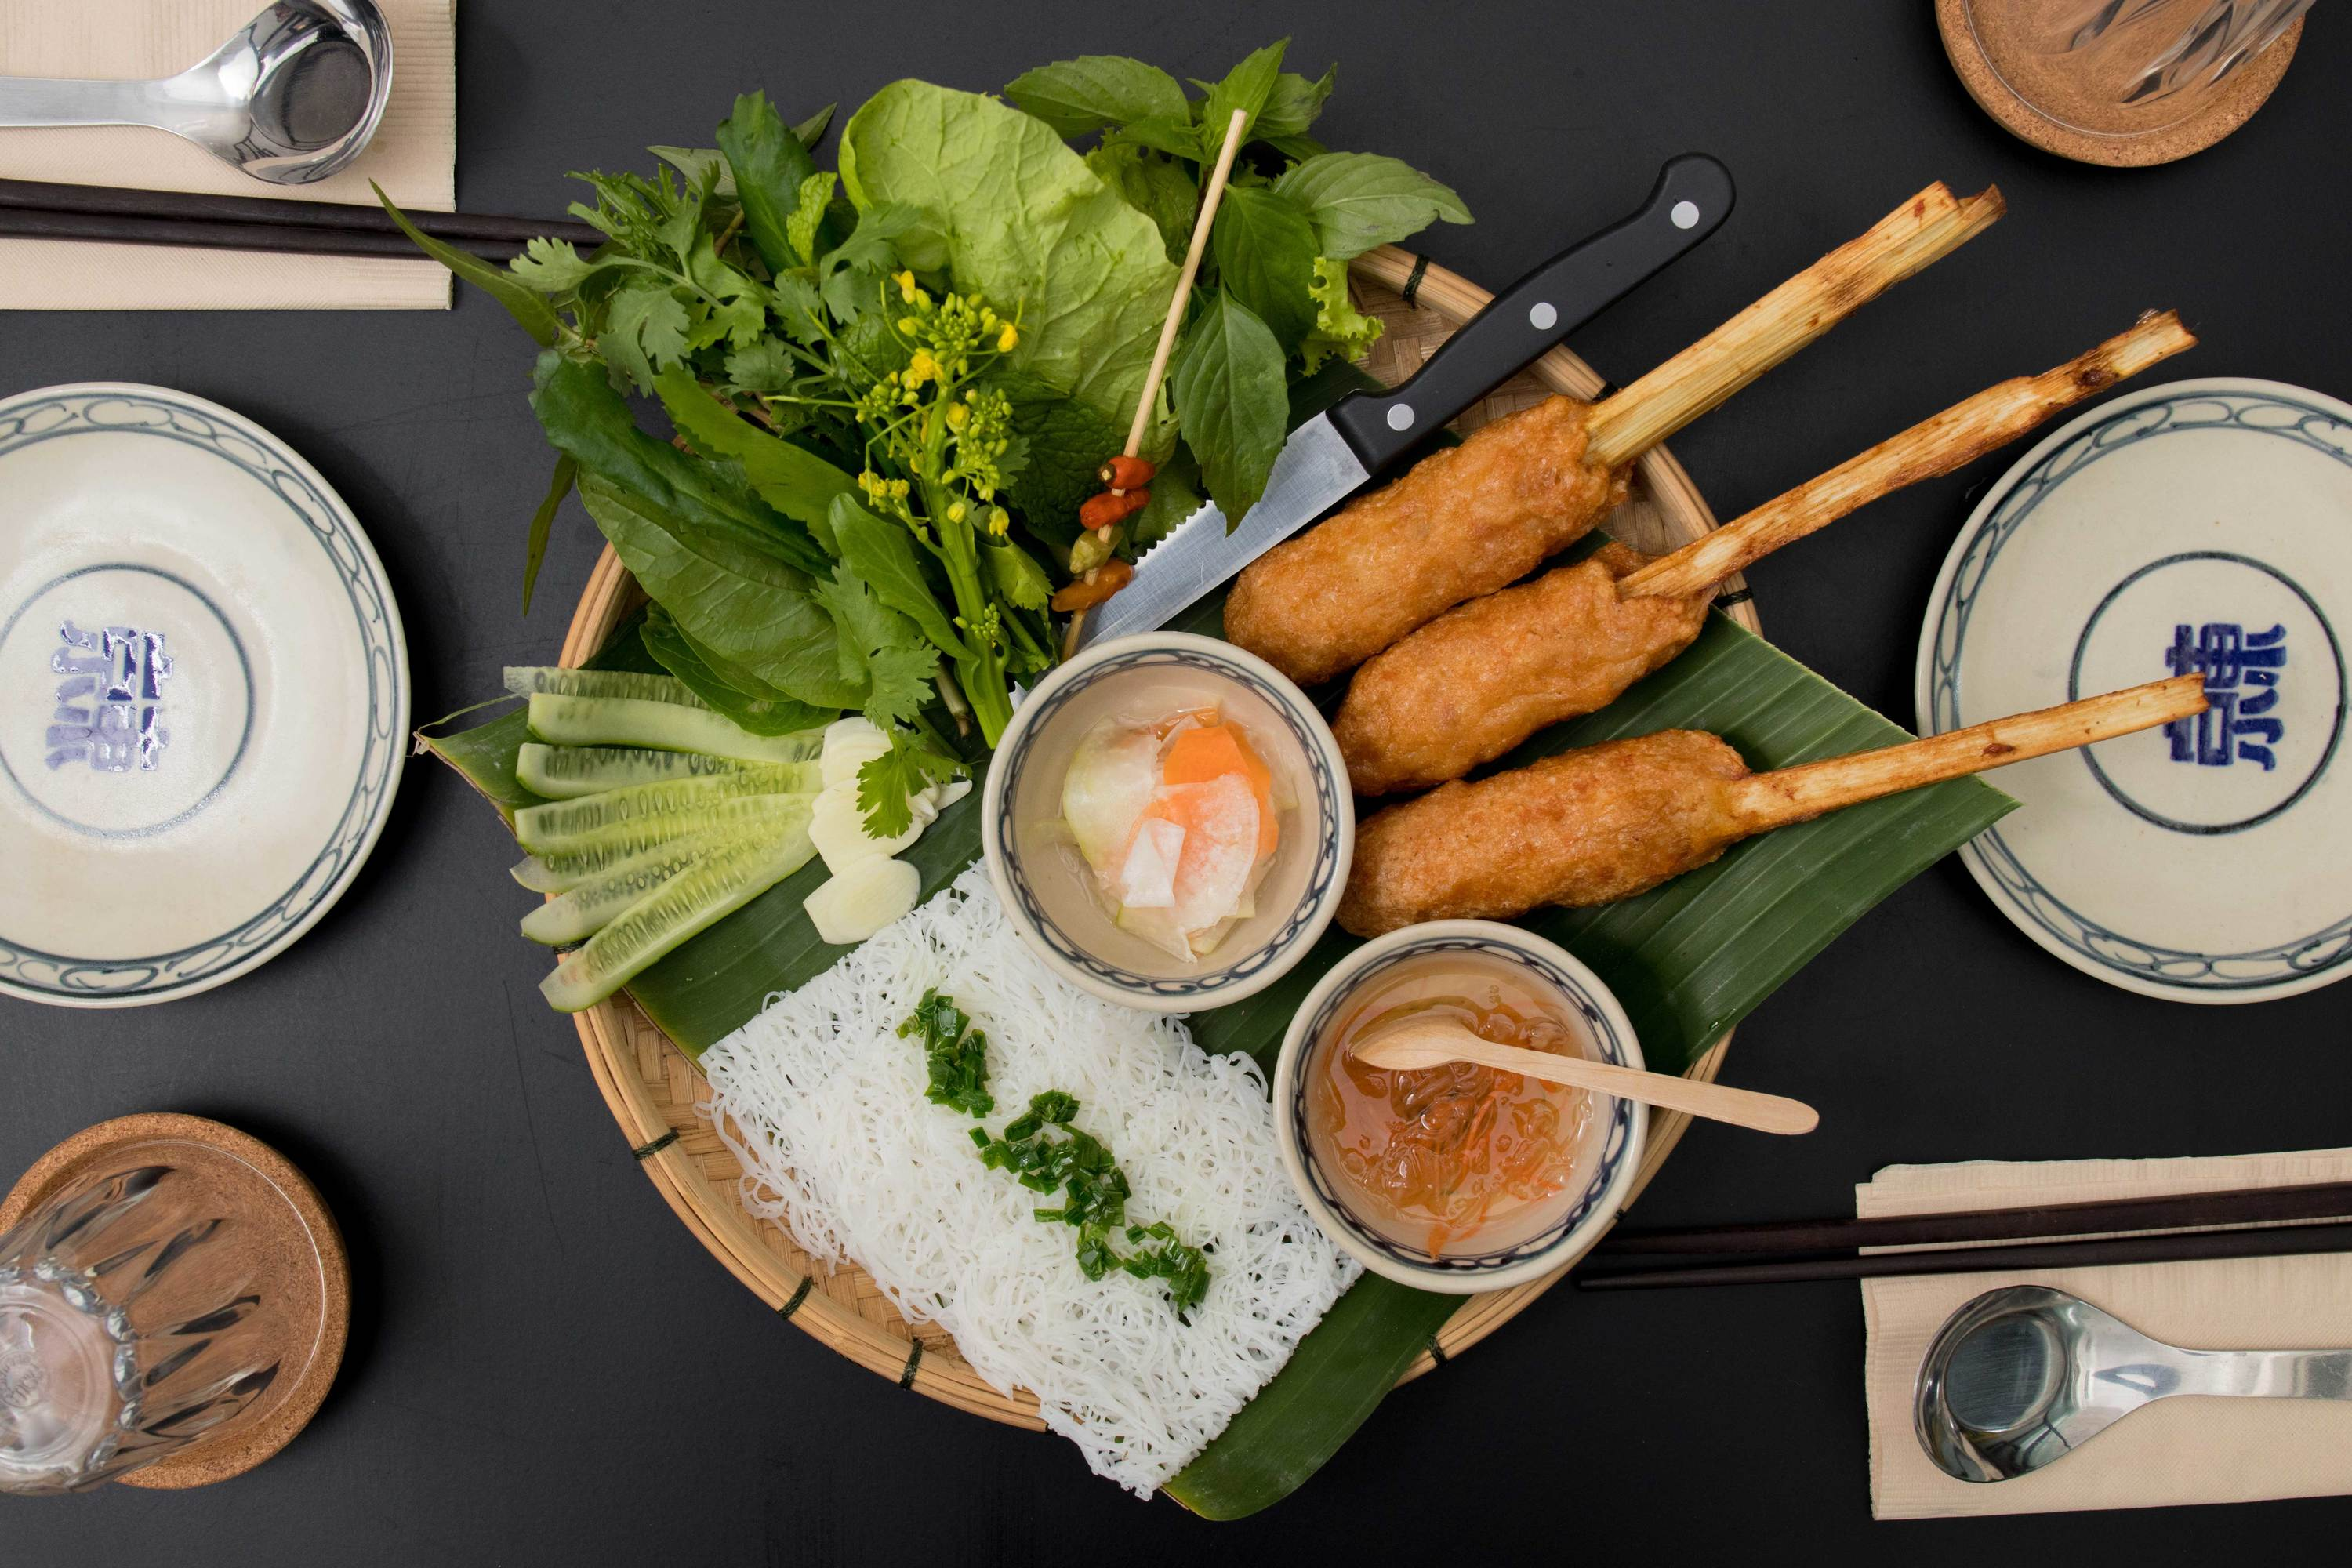 Cha Tom, vietnamese delicacies at Tonkin Annam